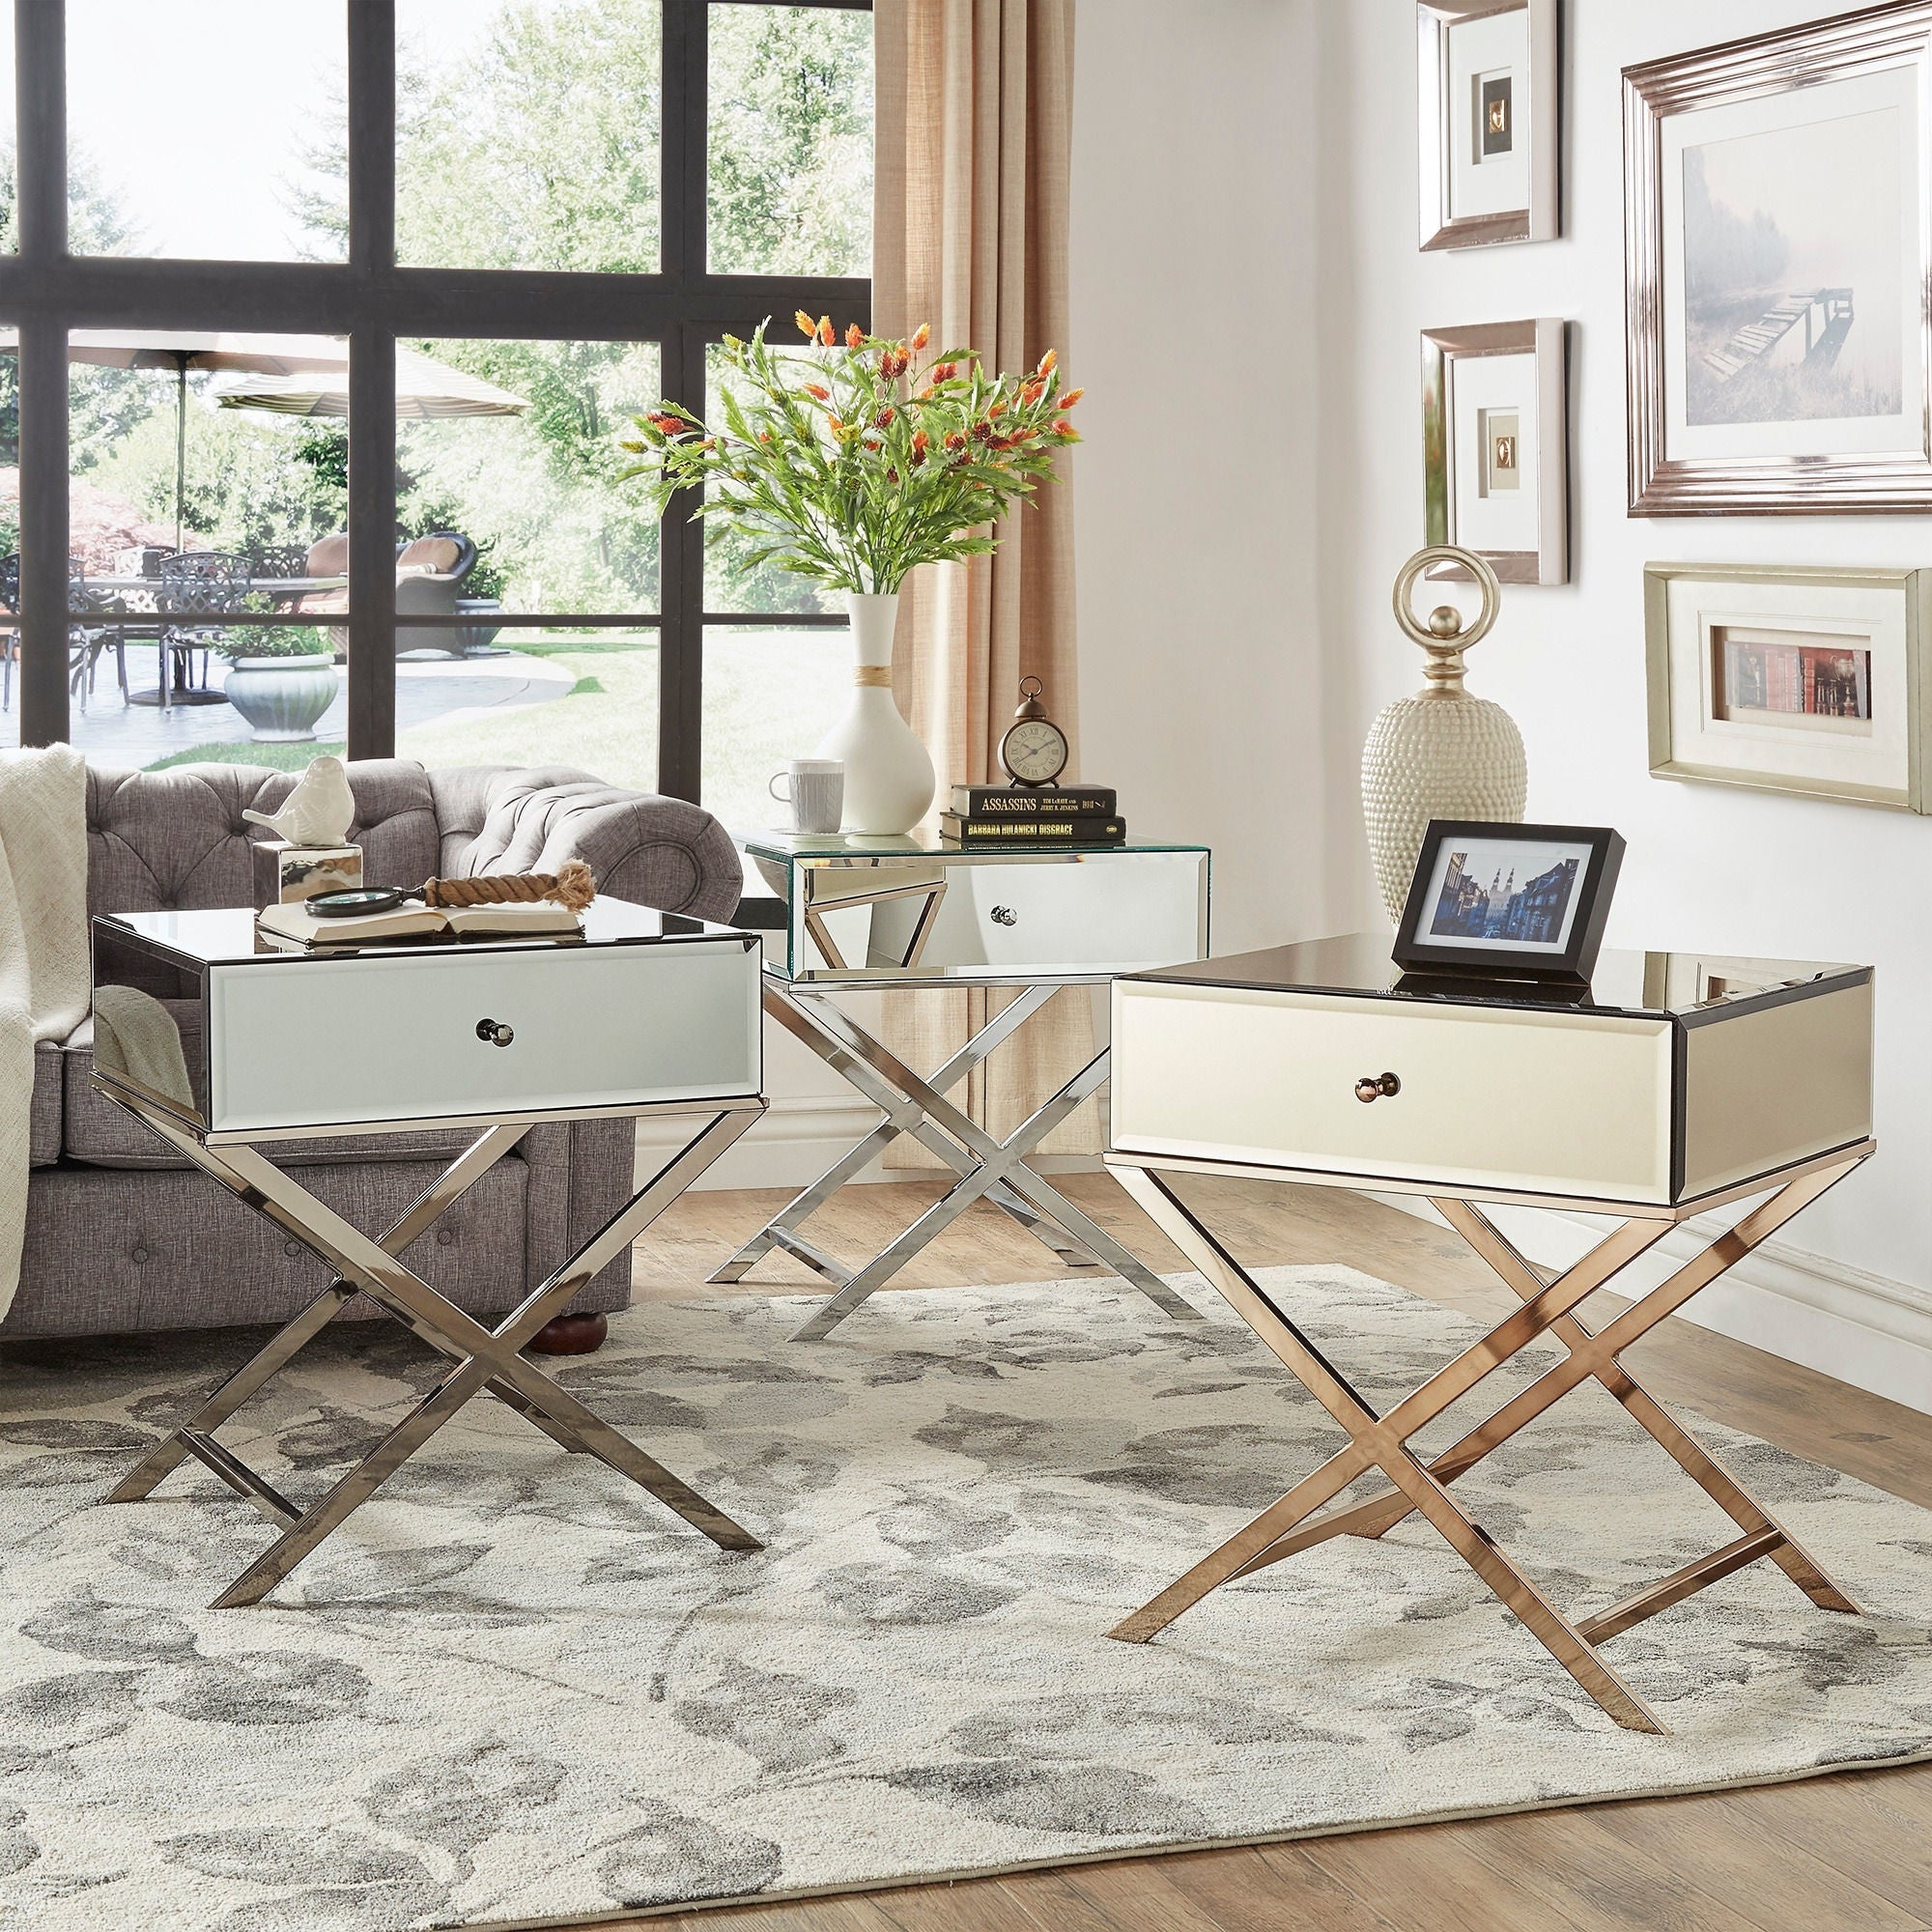 Ordinaire Shop Camille X Base Mirrored Accent Campaign Table By INSPIRE Q Bold   On  Sale   Free Shipping Today   Overstock.com   9821233